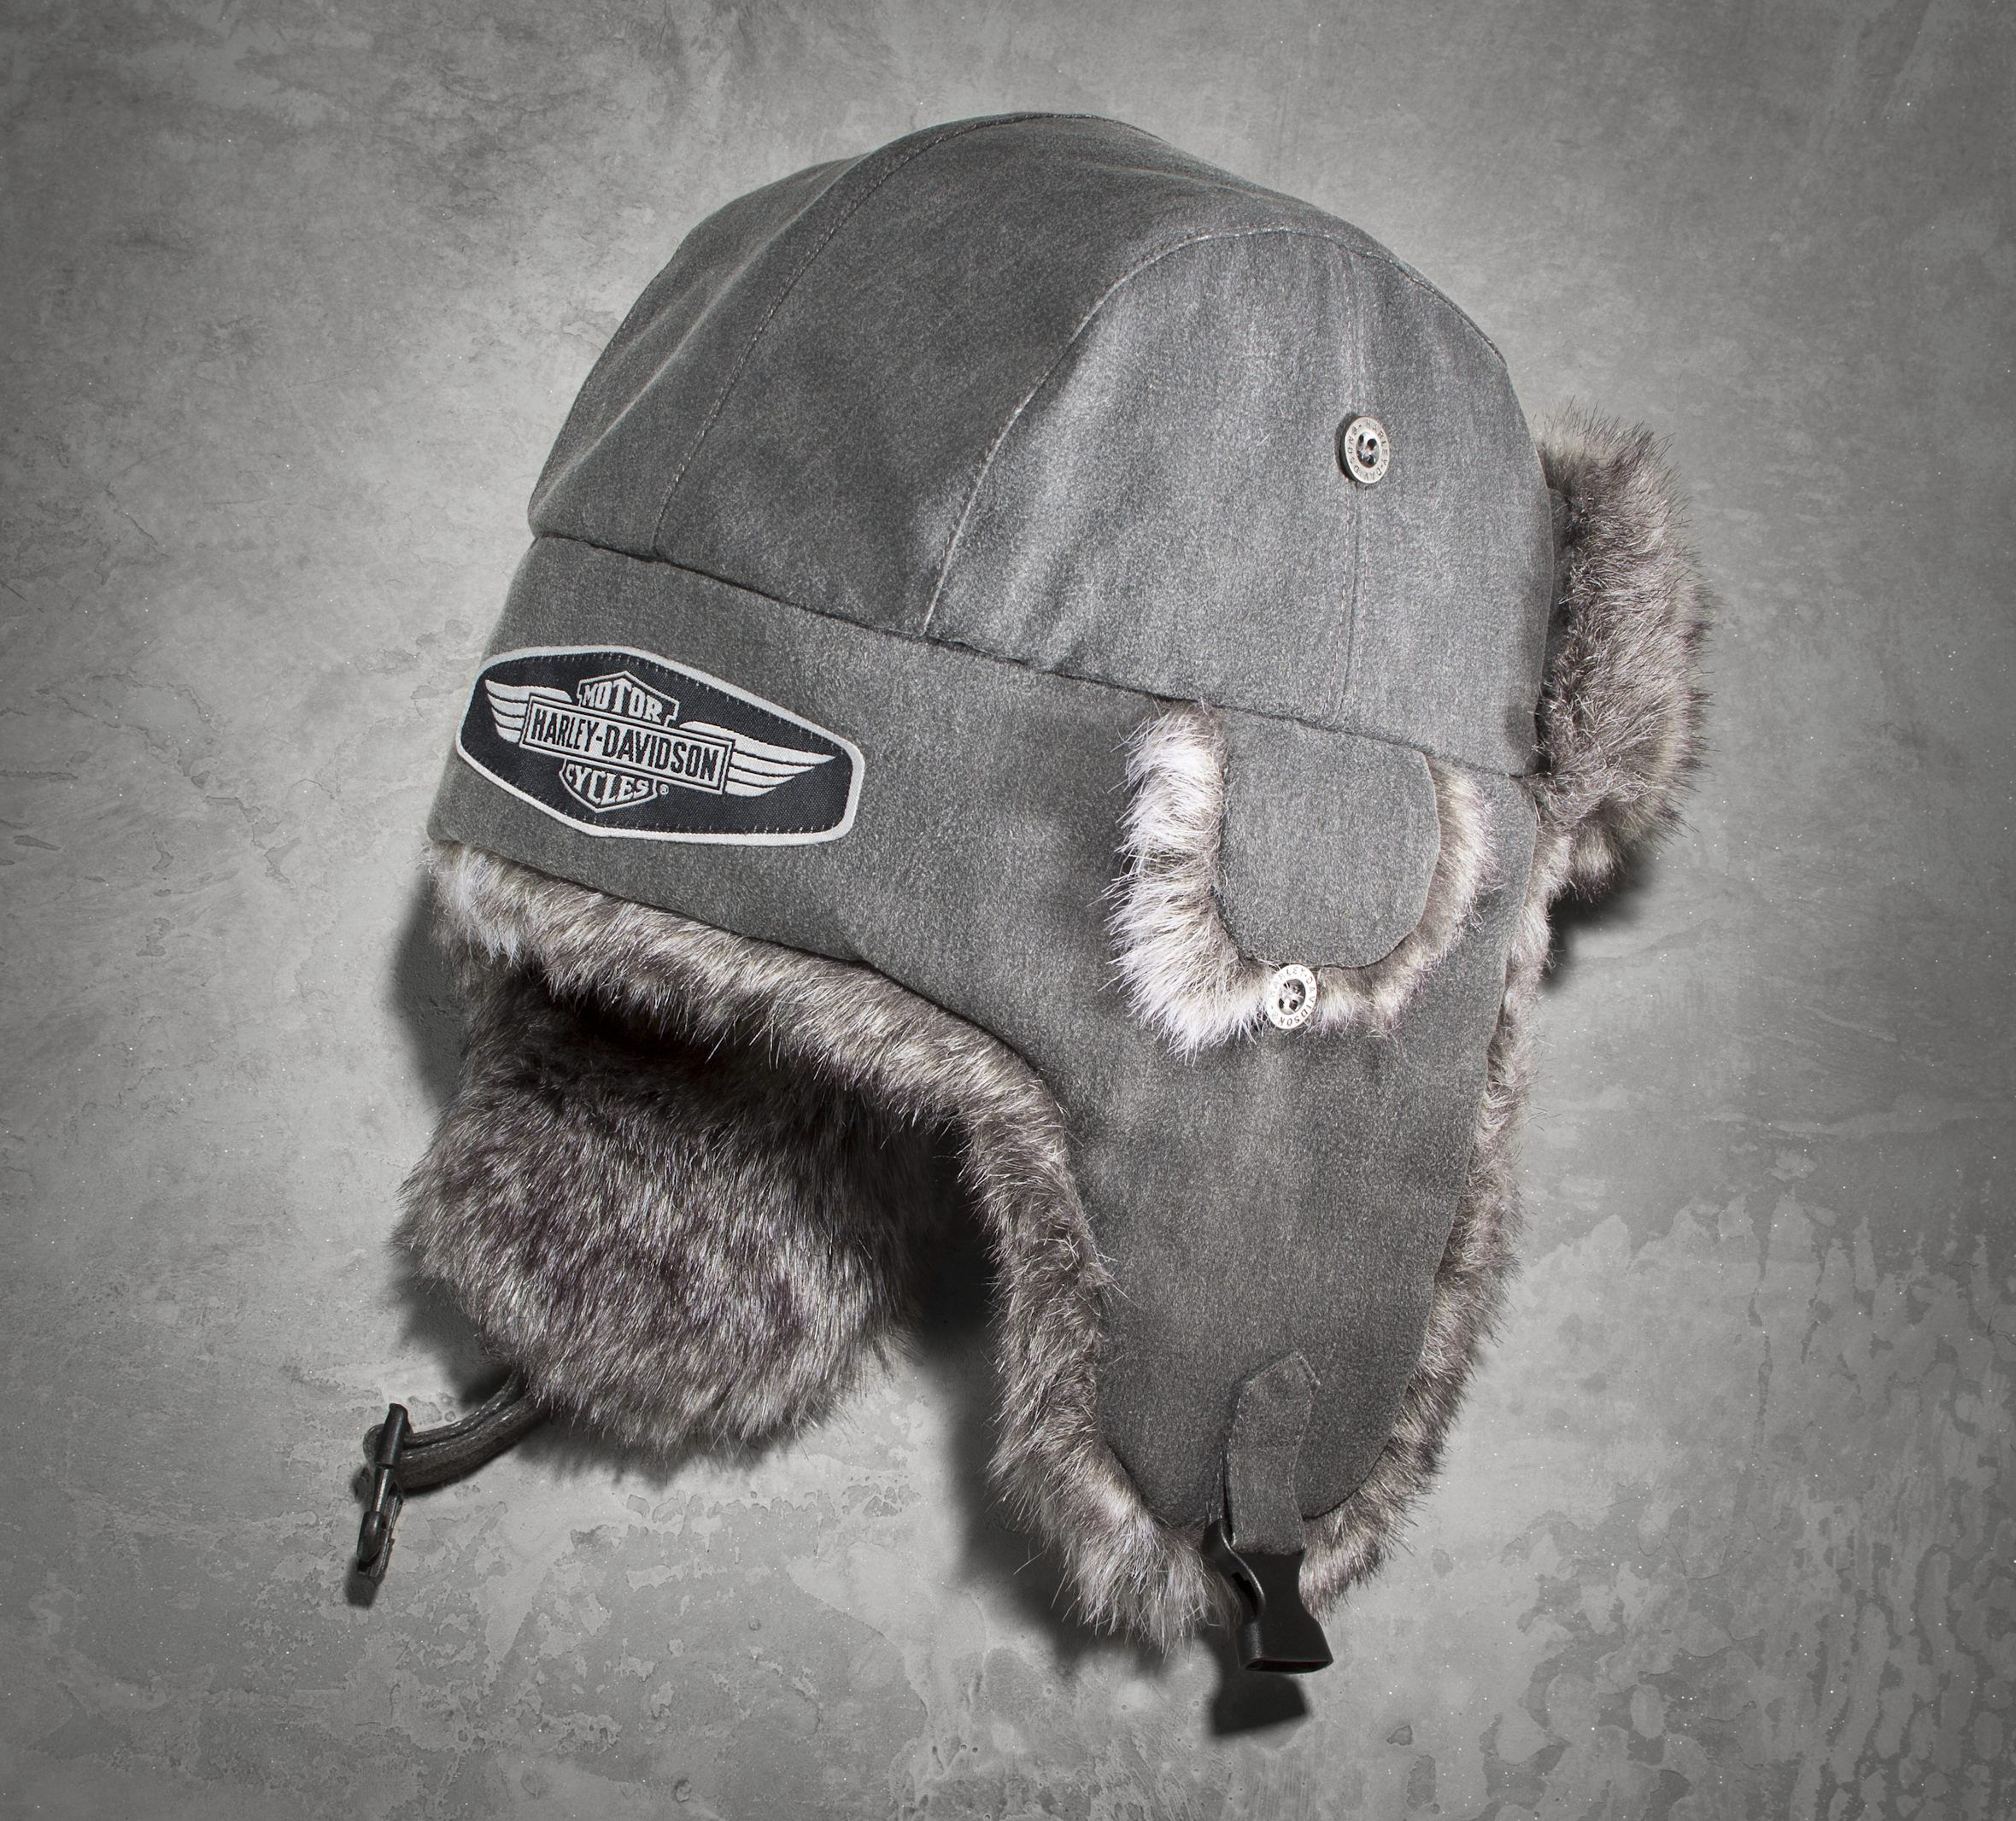 fc494fac32eaf Outsmart the never-ending winter weather in our faux fur lined winter cap  with ear flaps.